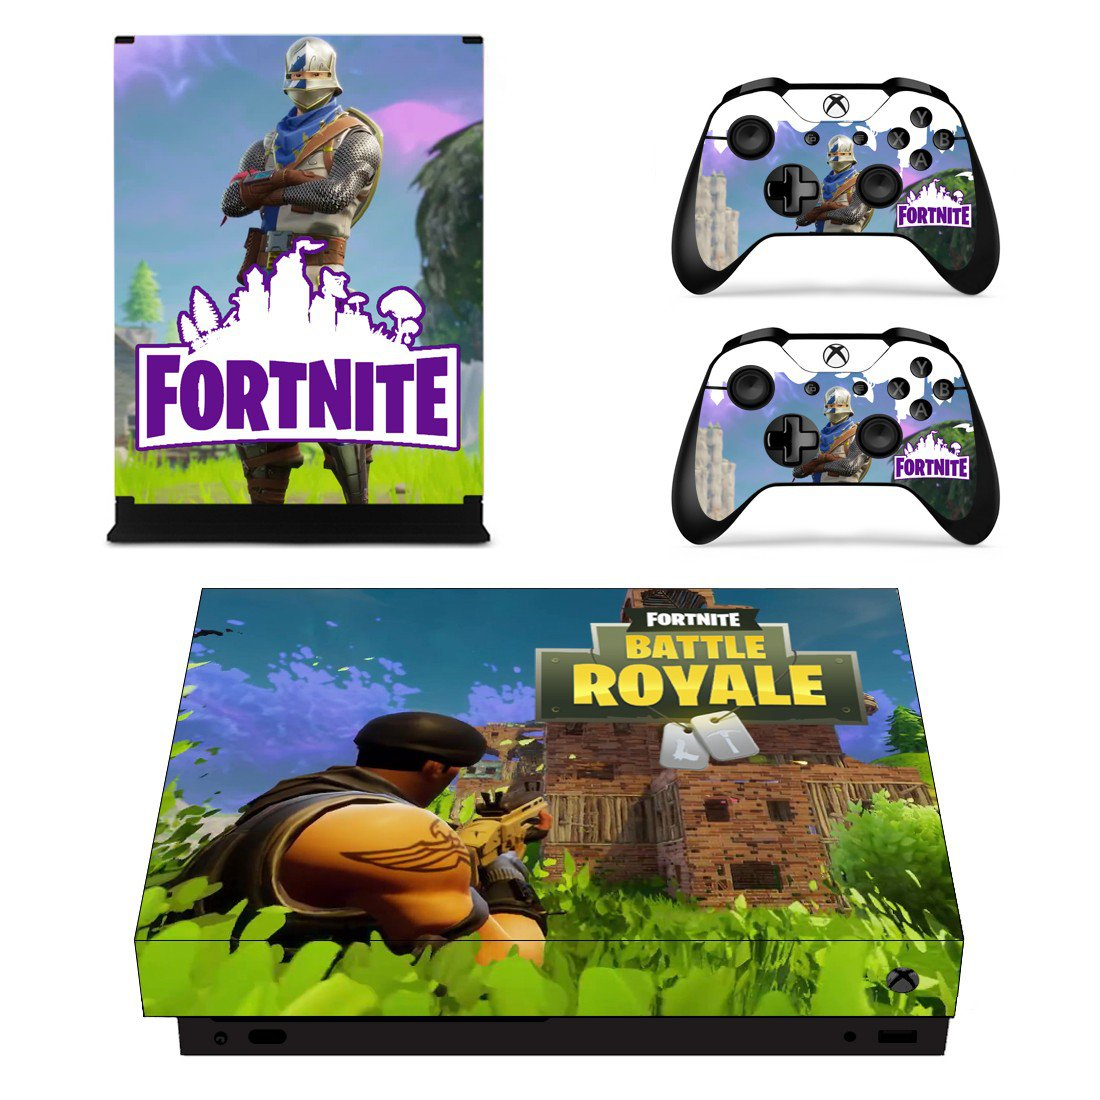 Fortnite Battle Royale Decal Skin Sticker For Xbox One X Console And